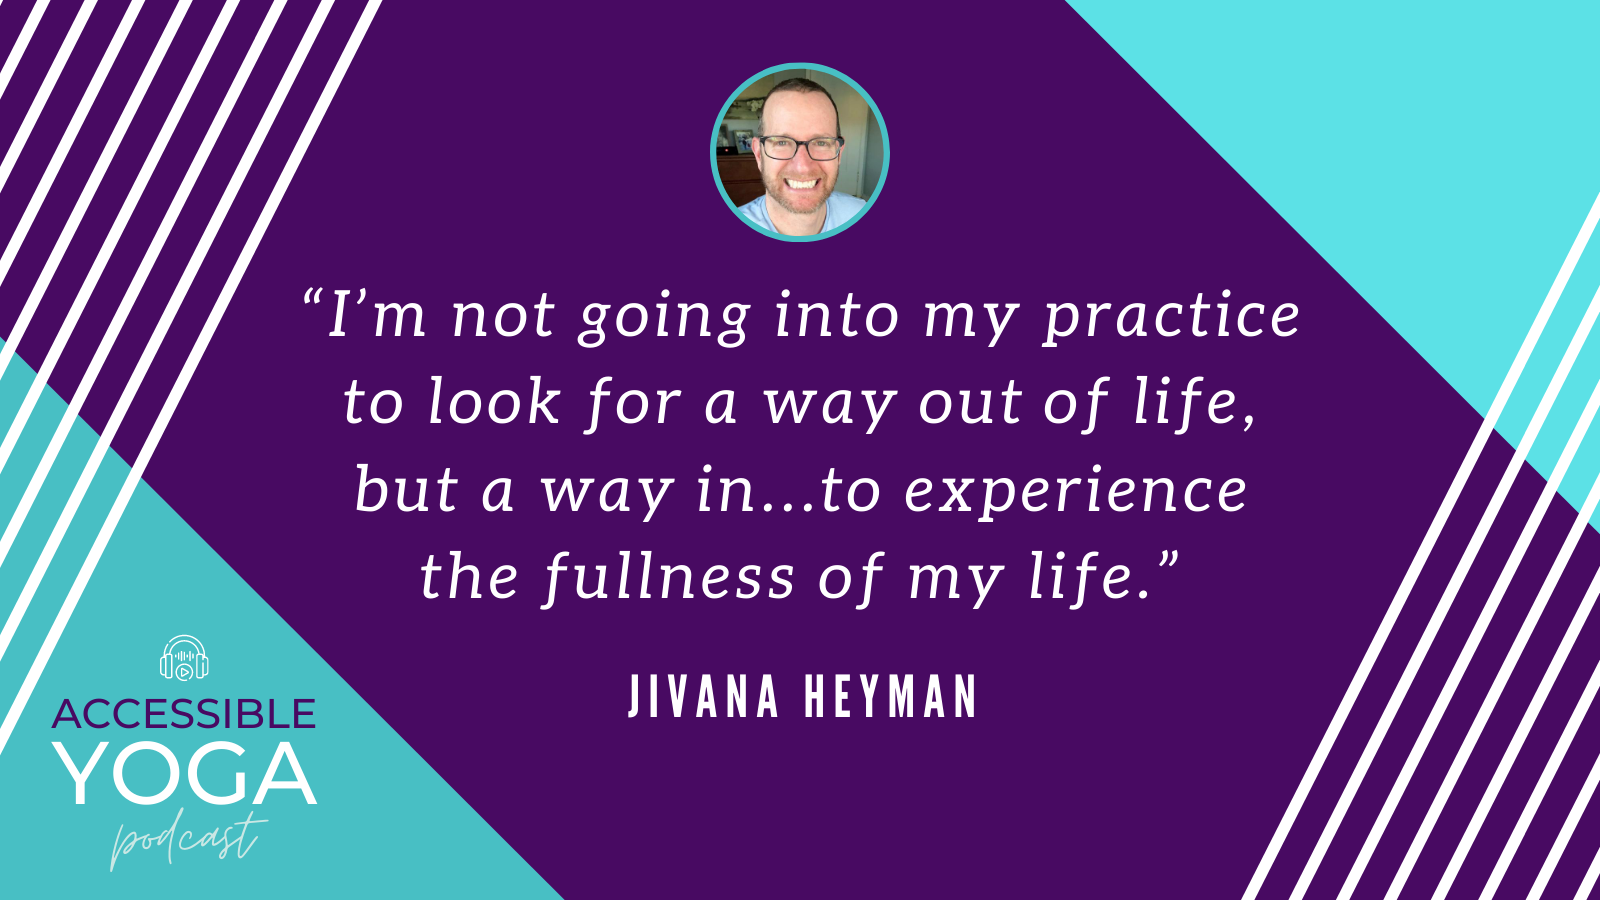 I am not going into my practice to look for a way out of life, but a way in...to experience the fullness of my life. -Jivana Heyman